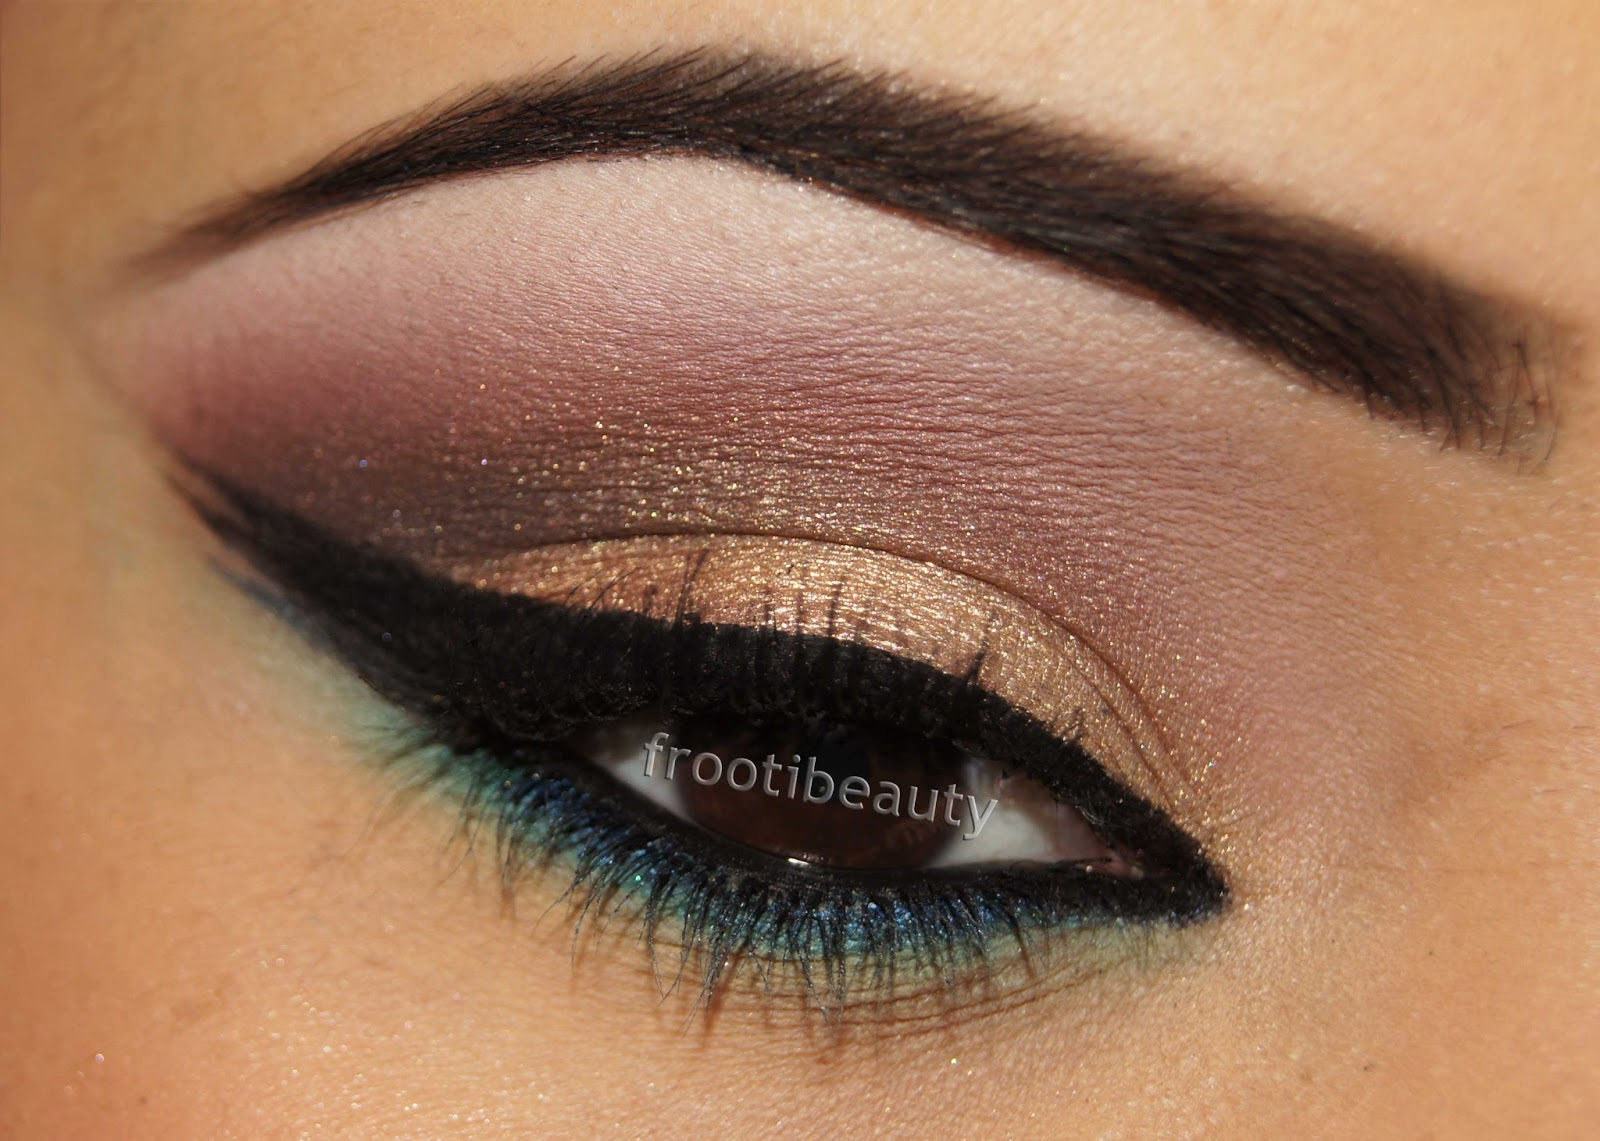 Golden eye shades for bridal makeup tutorial research in from makeup artist its confirm that golden eye shades are looking amazing and great on bridal makeup here we share with you some different baditri Image collections